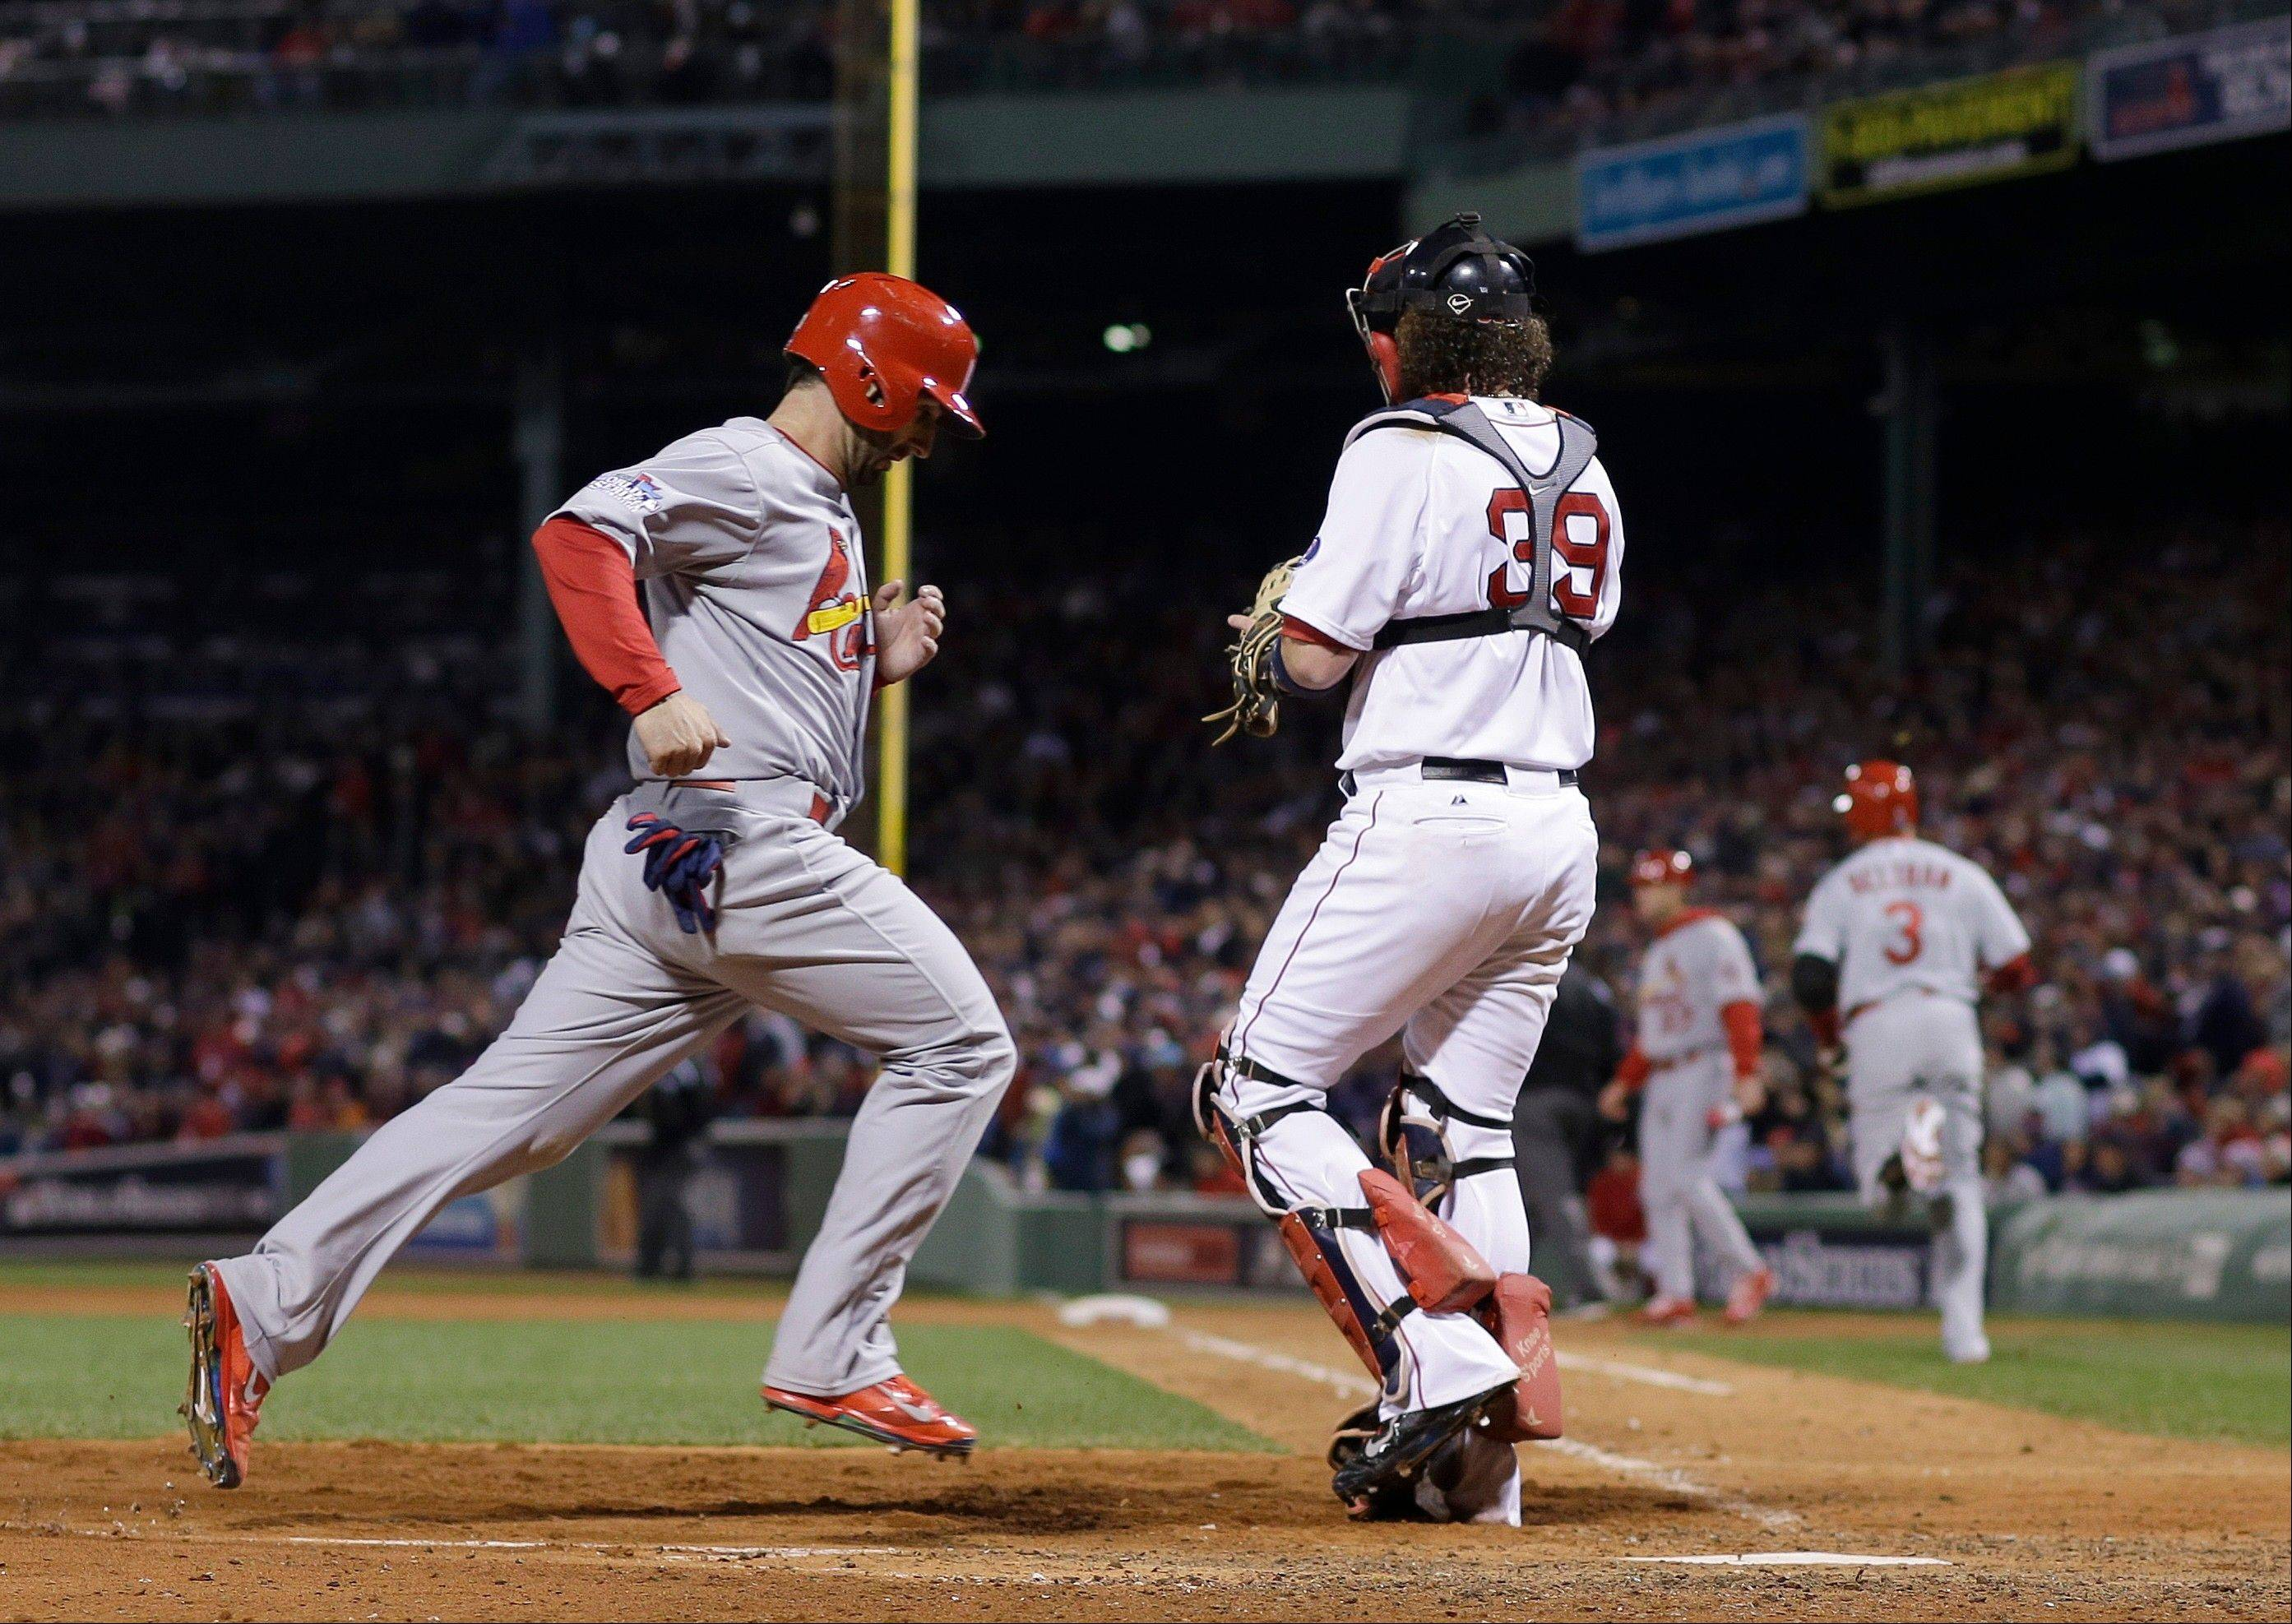 St. Louis Cardinals' Daniel Descalso scores past Boston Red Sox catcher Jarrod Saltalamacchia (39) on a hit by Carlos Beltran during the seventh inning of Game 2 of baseball's World Series Thursday in Boston.